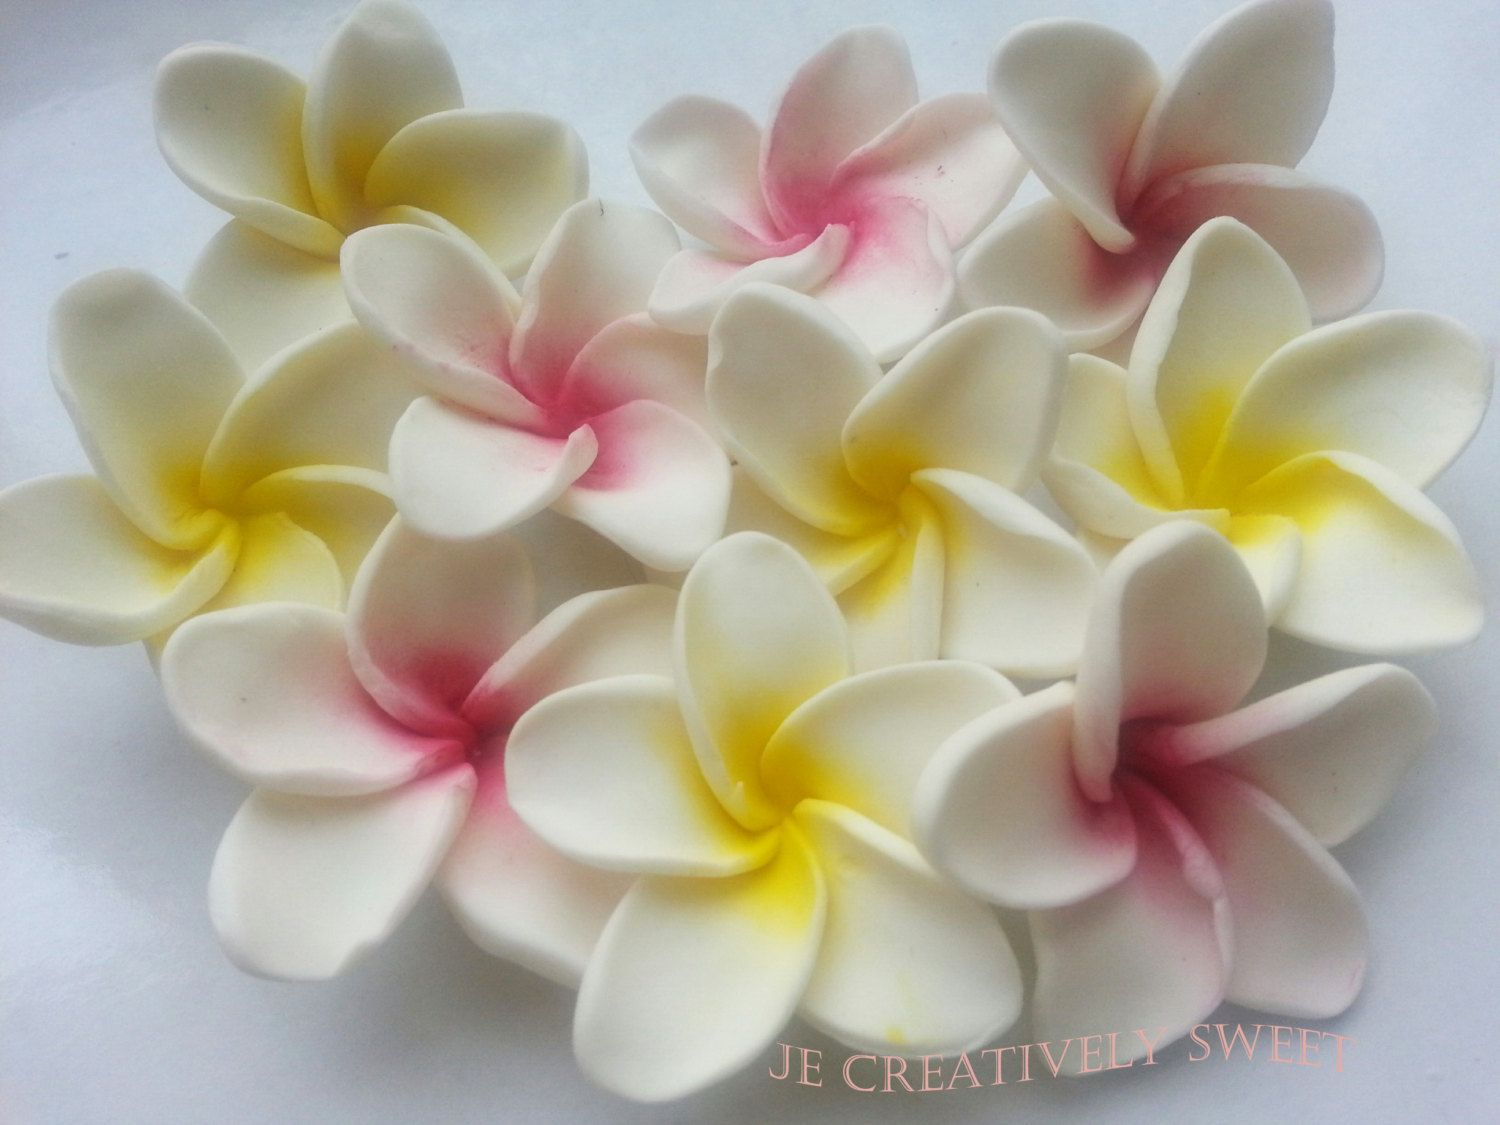 Plumeria frangipani tropical exotic flowers edible gumpaste fondant plumeria frangipani tropical exotic flowers edible gumpaste fondant cake cupcake cookies toppers by jecreativelysweet on etsy izmirmasajfo